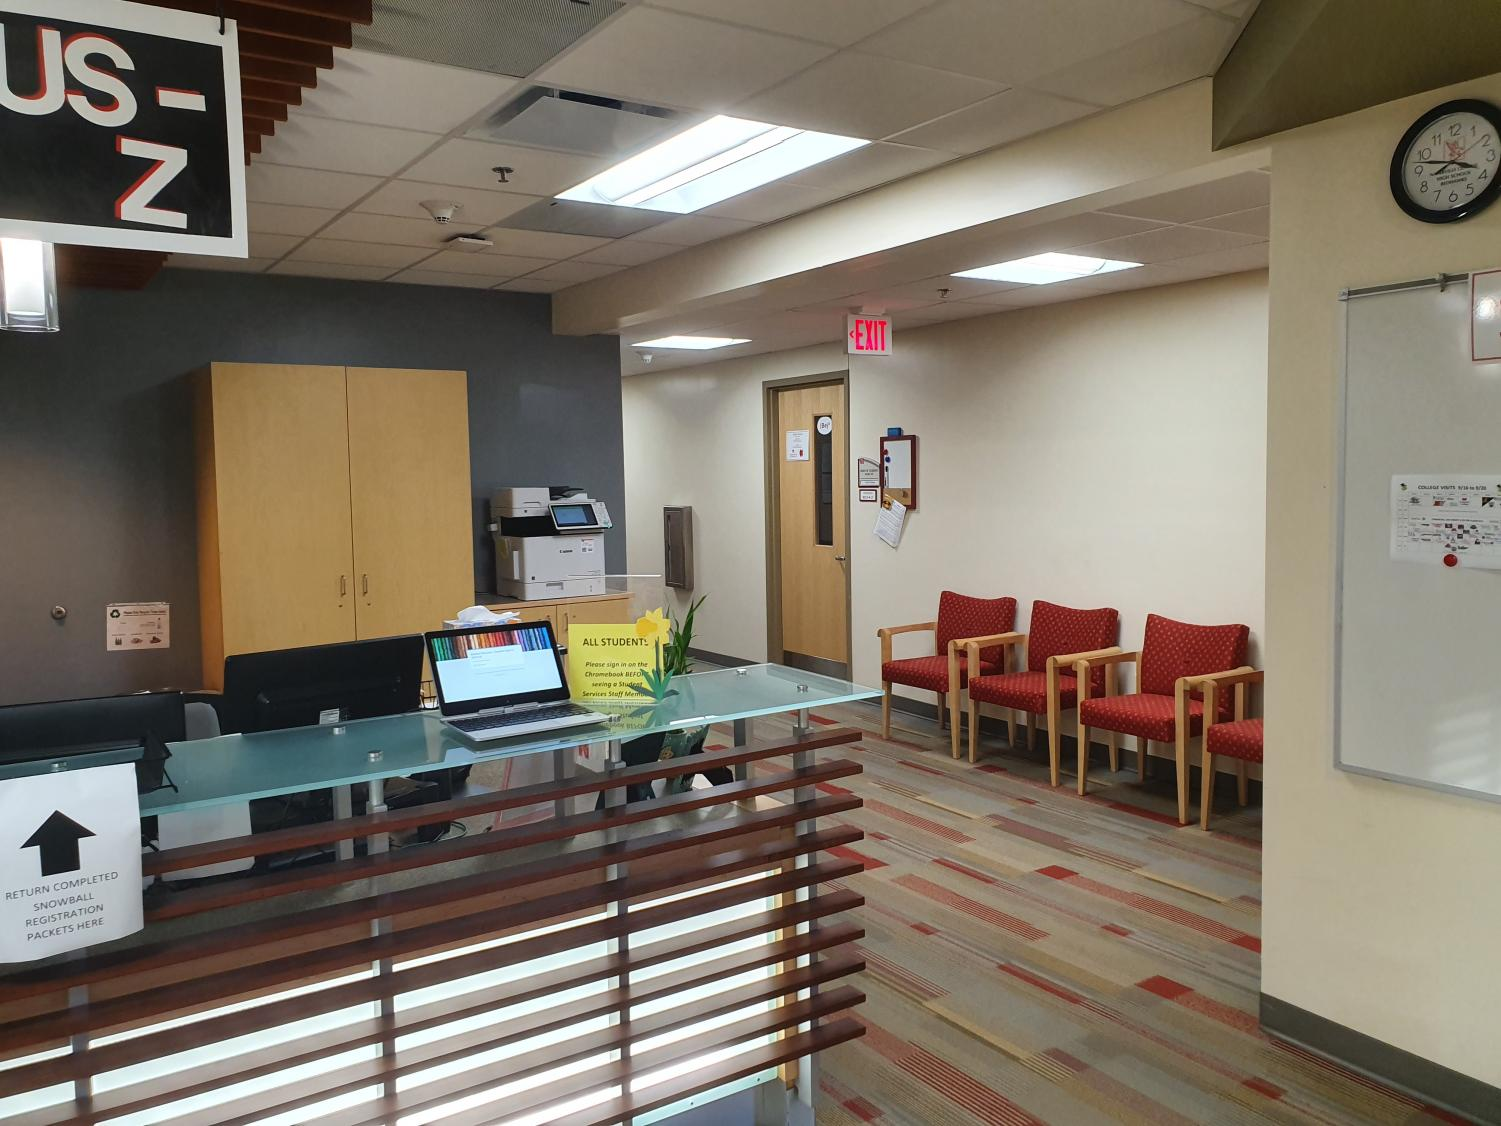 Students can find their counselors in Student Services, located in the flat wing.